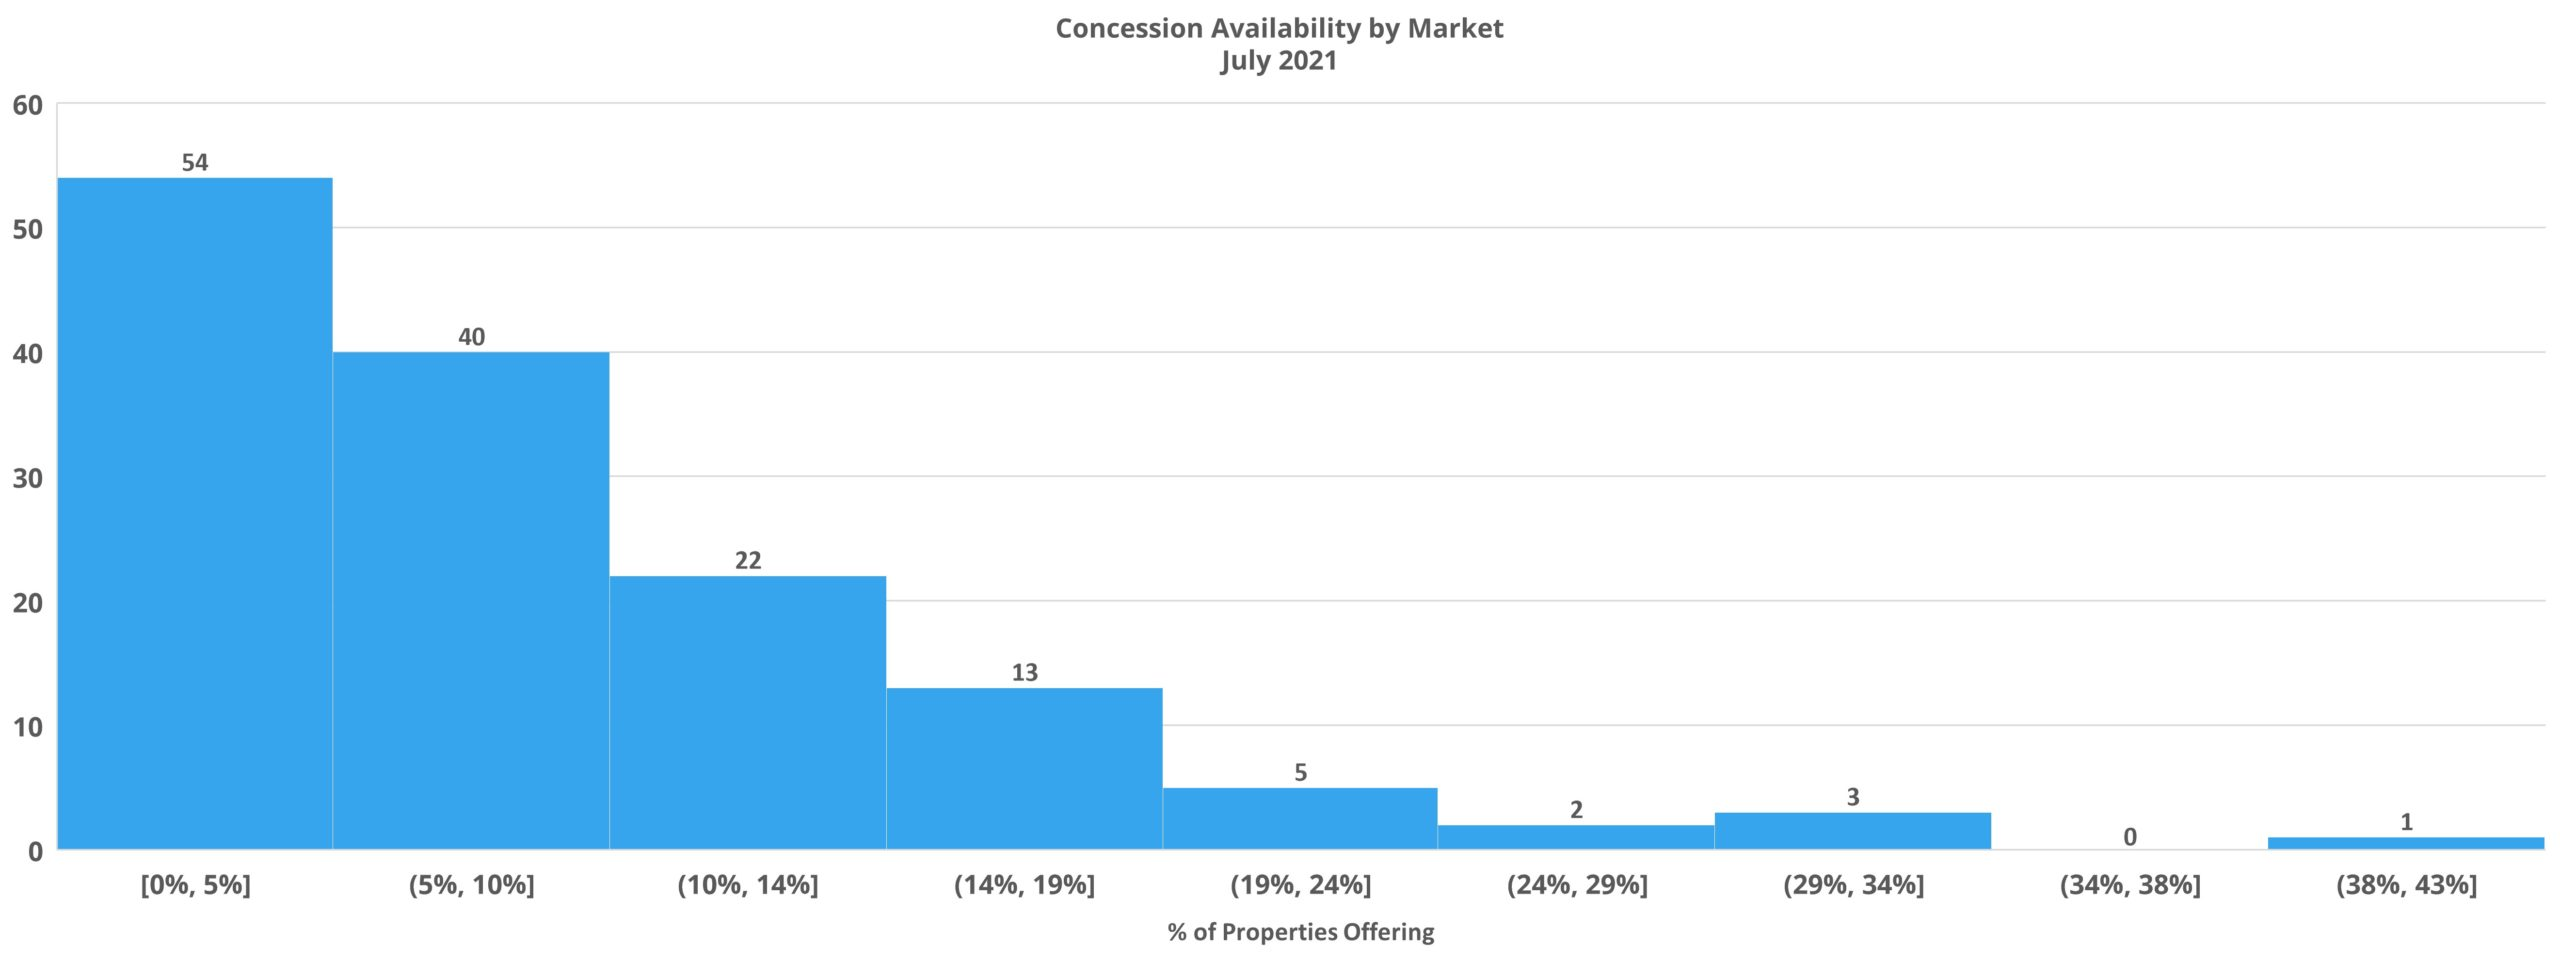 Concession Availability by Market